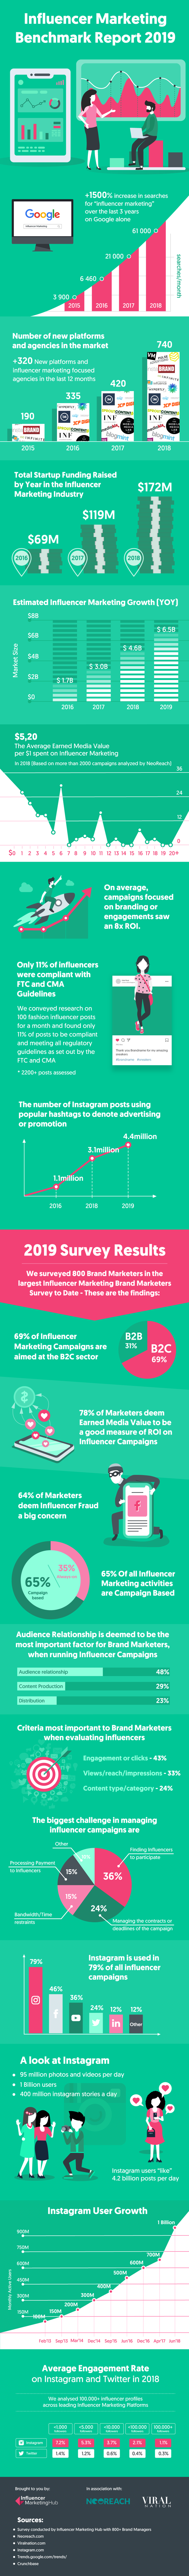 Influencer-Marketing-Benchmark-Report-2019-1.png